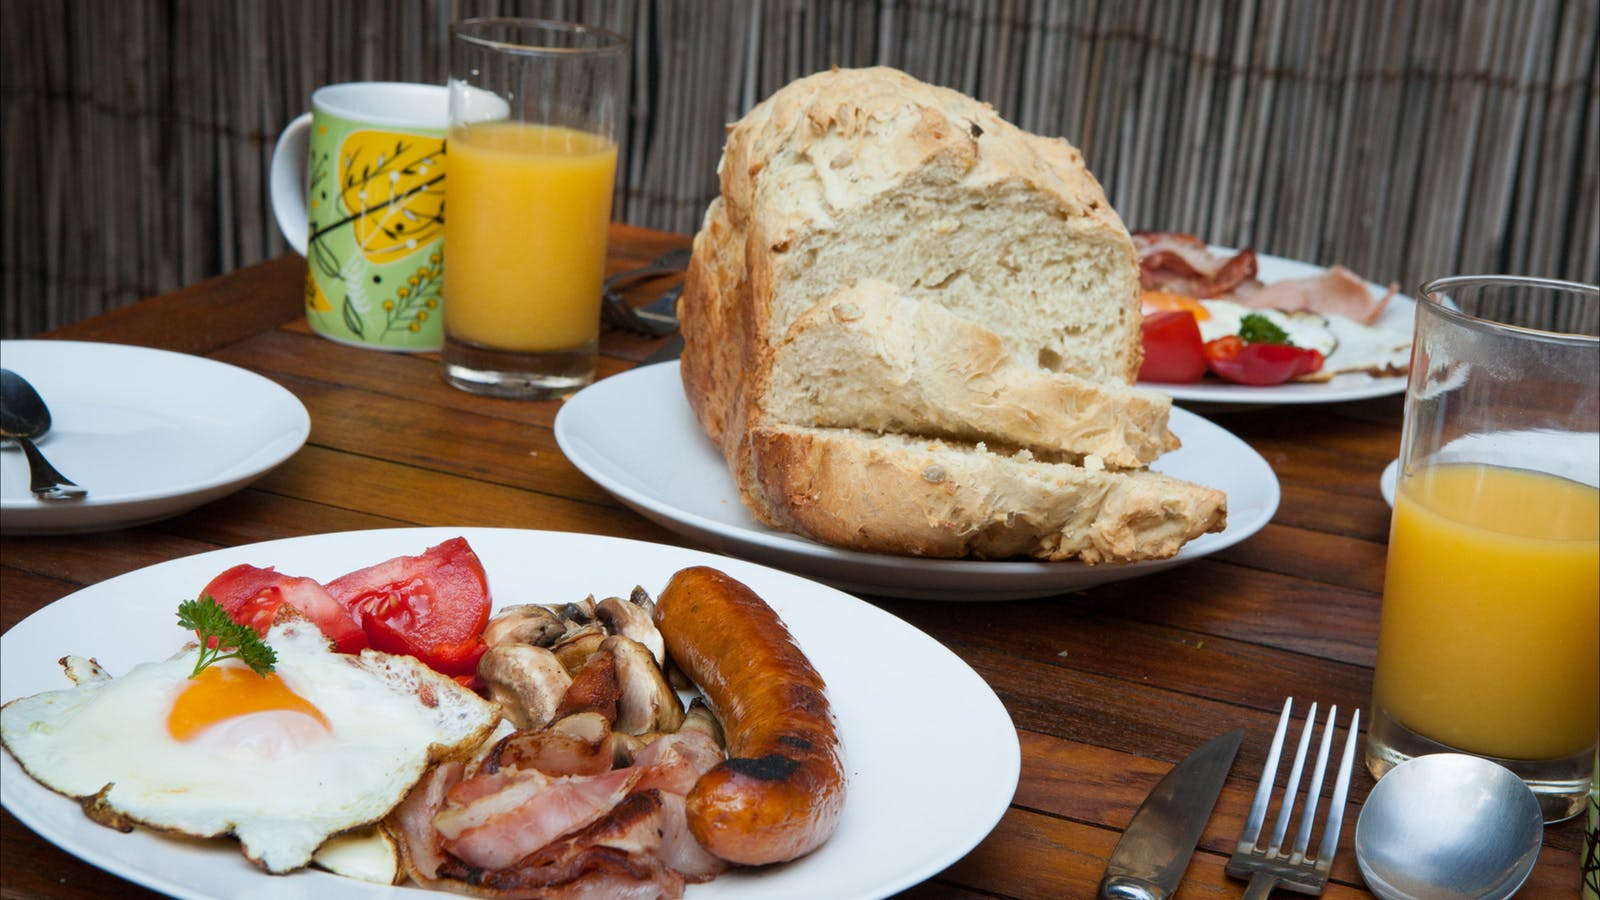 BBQ Breakfast with homemade bread